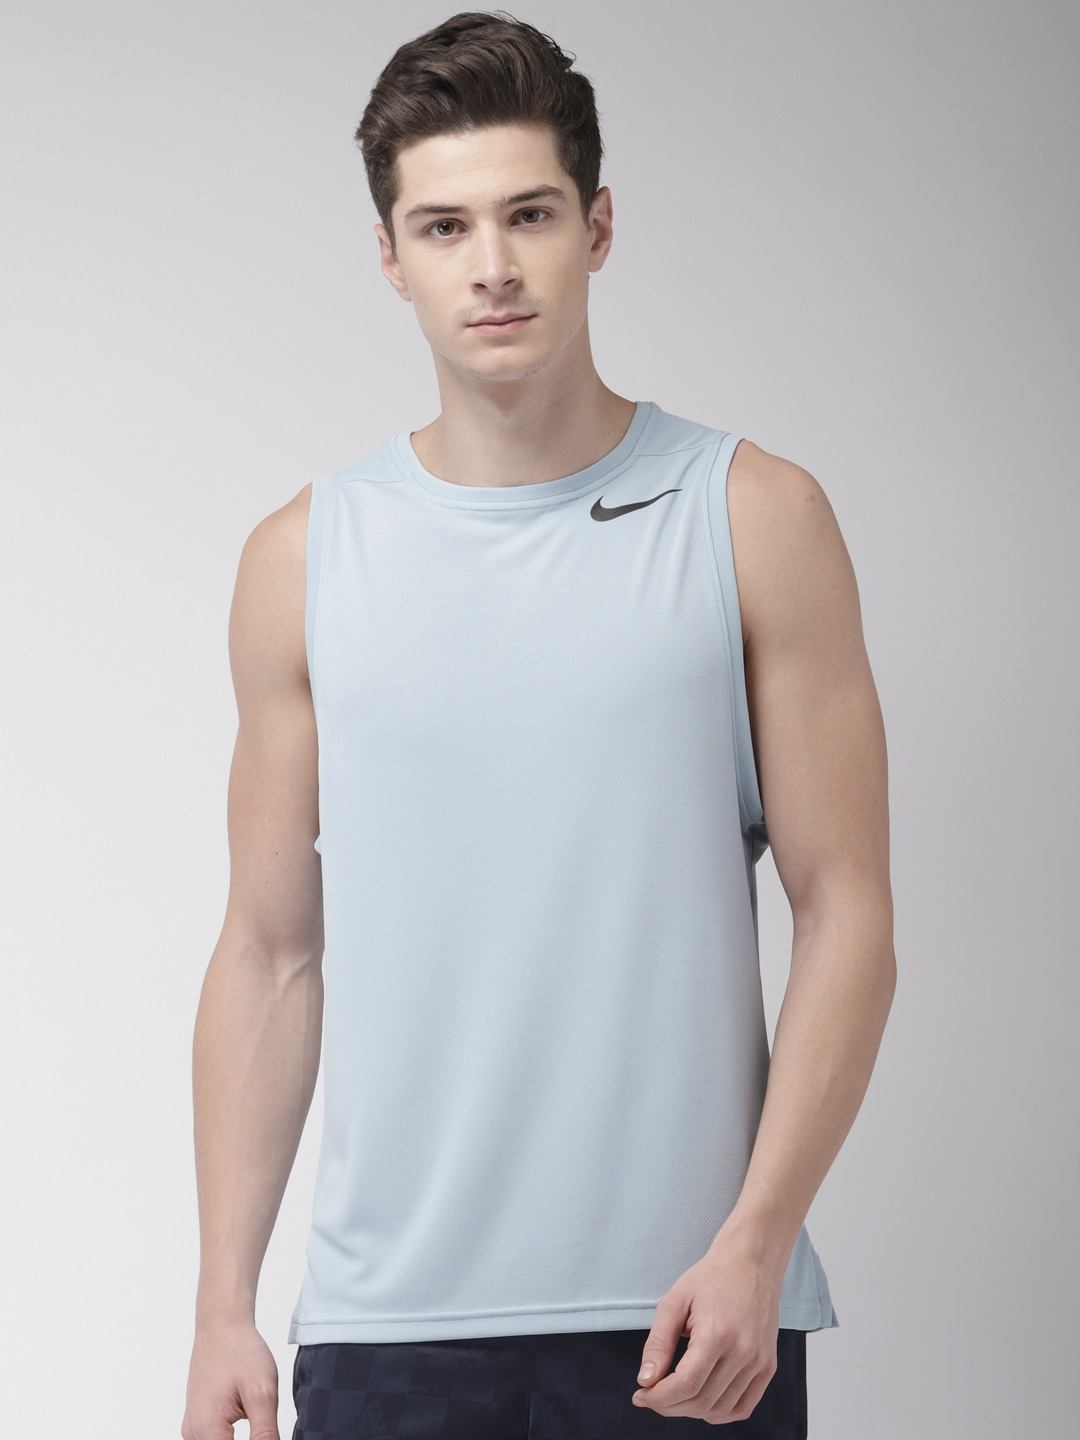 b19acec935e57 Nike Polyester Tshirts - Buy Nike Polyester Tshirts online in India